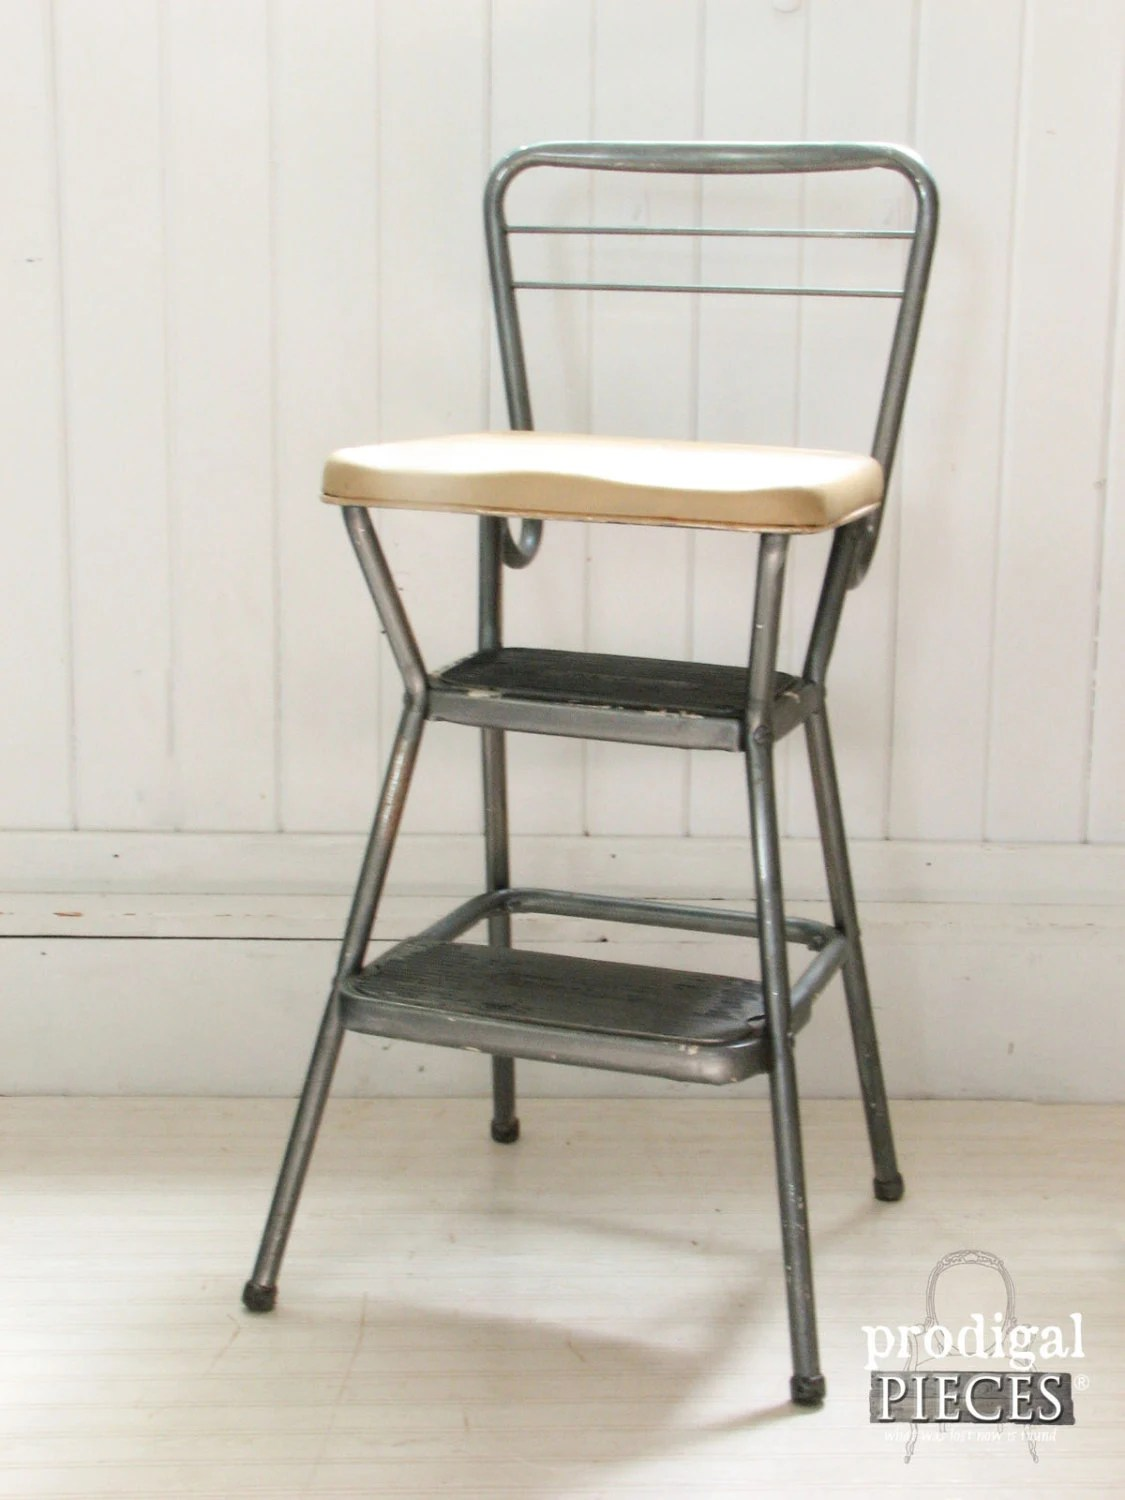 1950 S Vintage Cosco Step Stool With Folding Seat Retro Kitchen Goodness Utilitarian